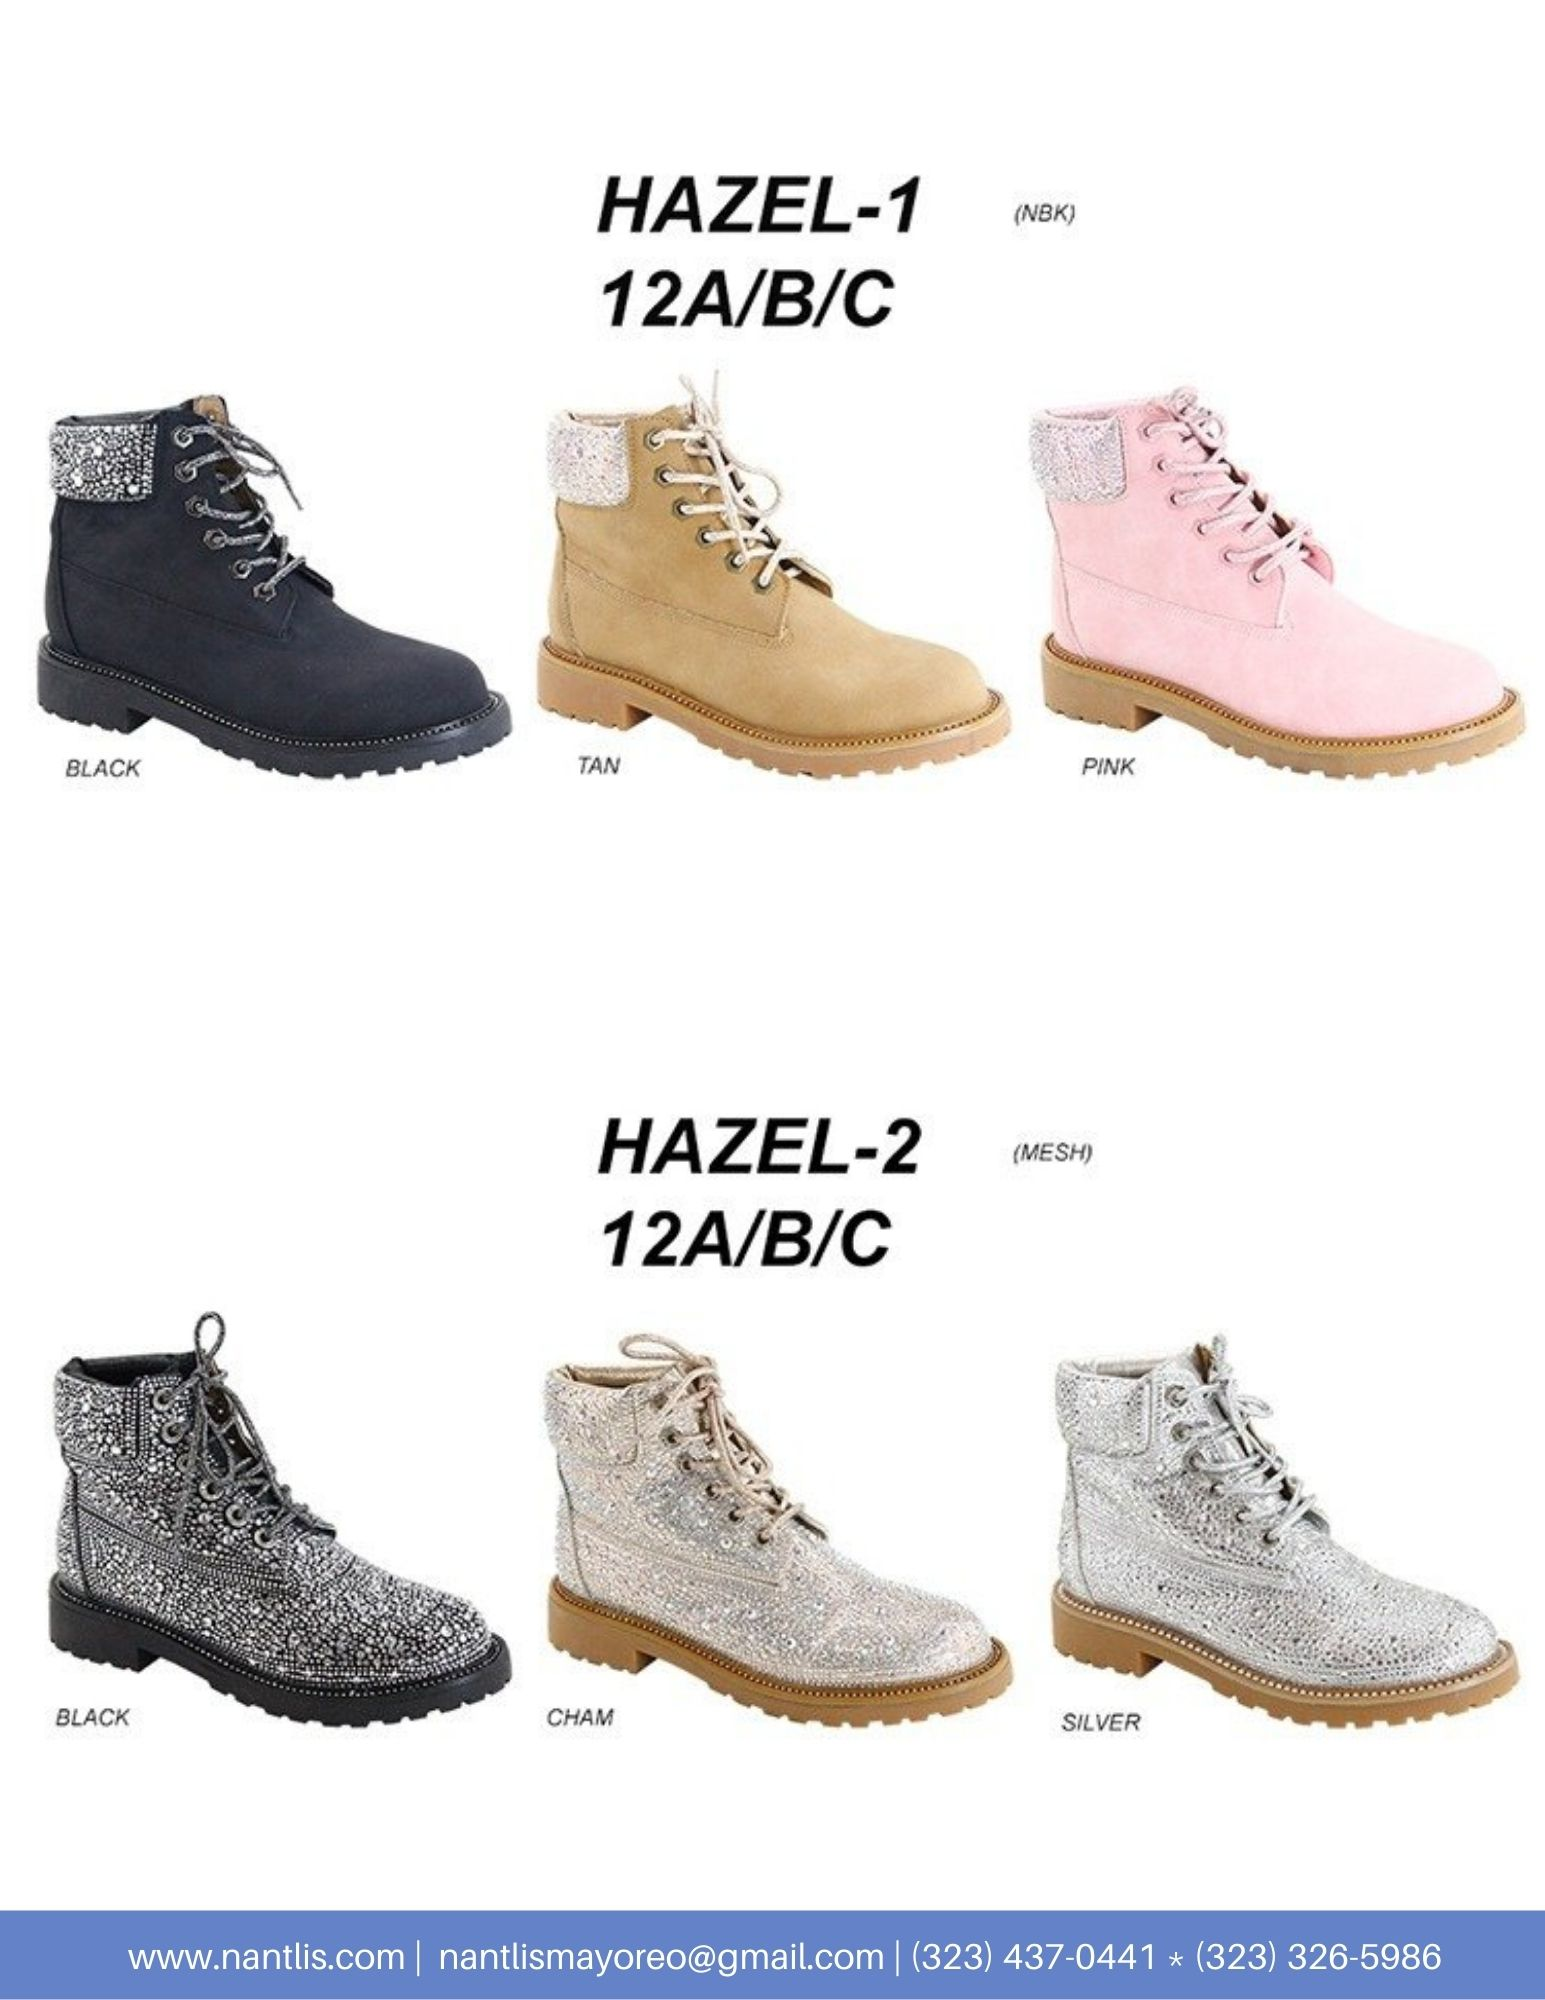 Nantlis Vol AN22 Botas Mujer mayoreo Catalogo Wholesale boots for women page 15